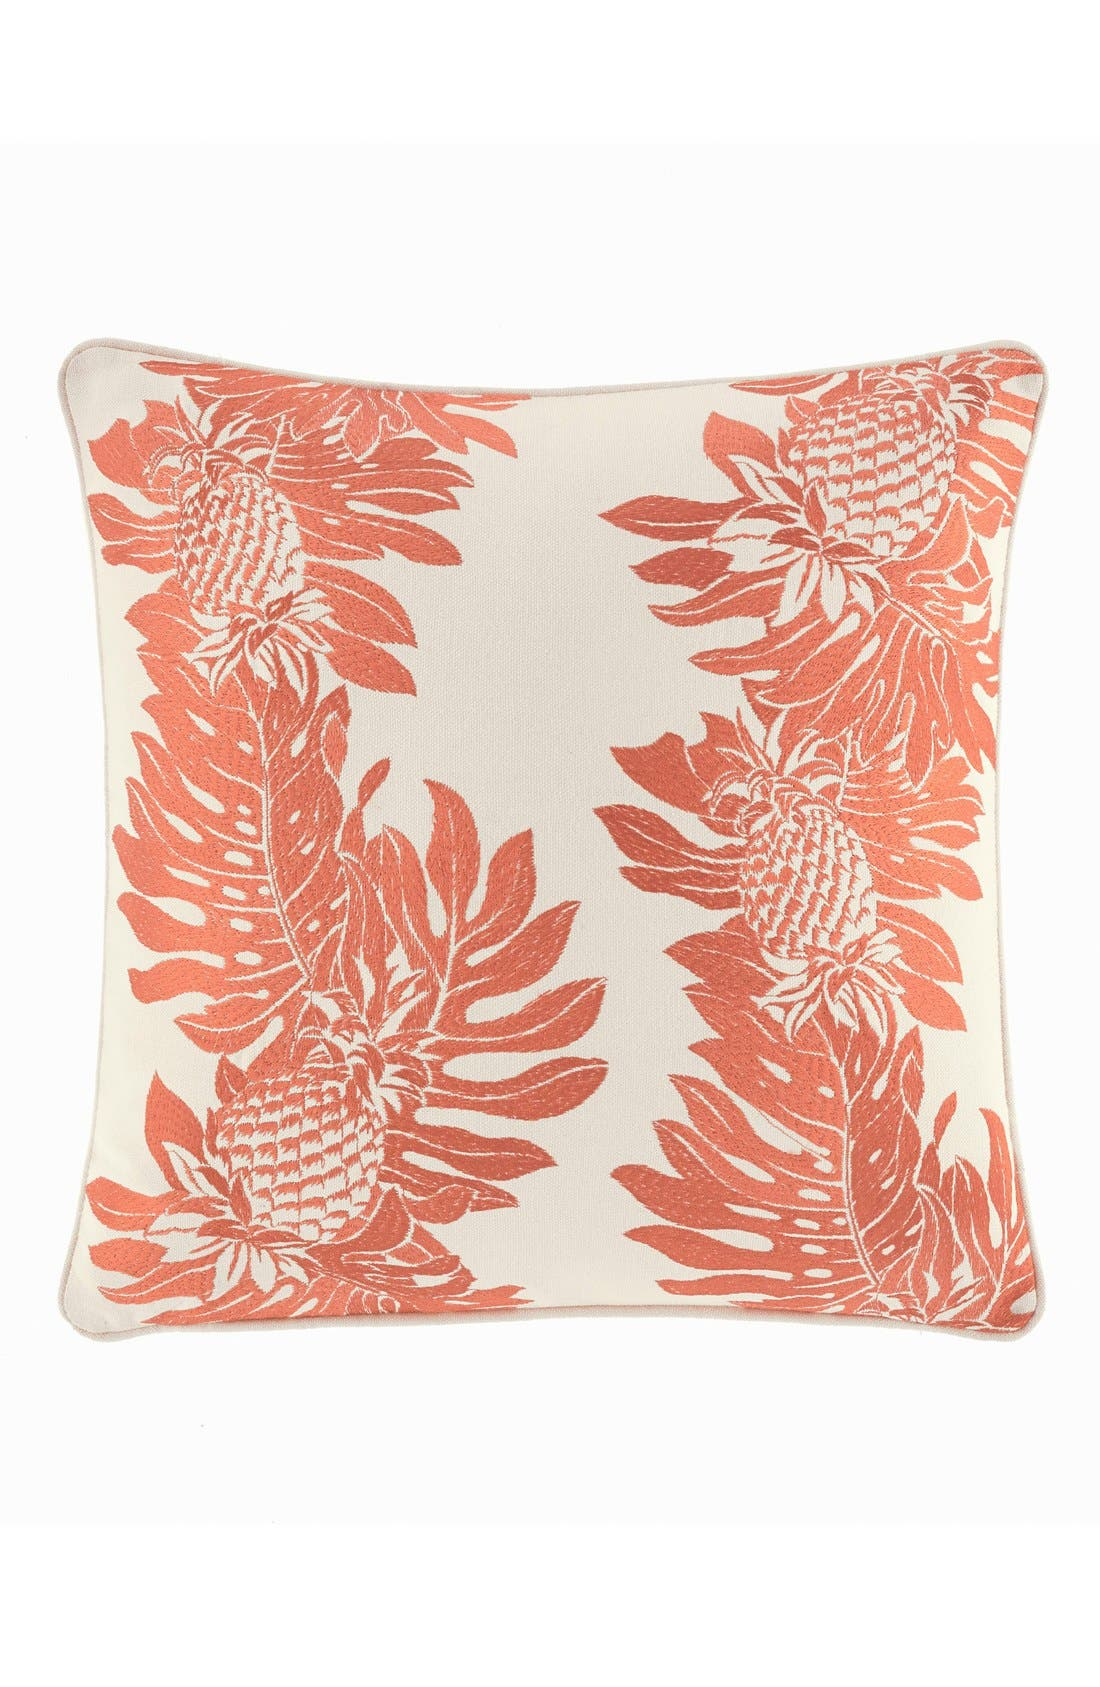 Alternate Image 1 Selected - Tommy Bahama 'Pineapple' Accent Pillow